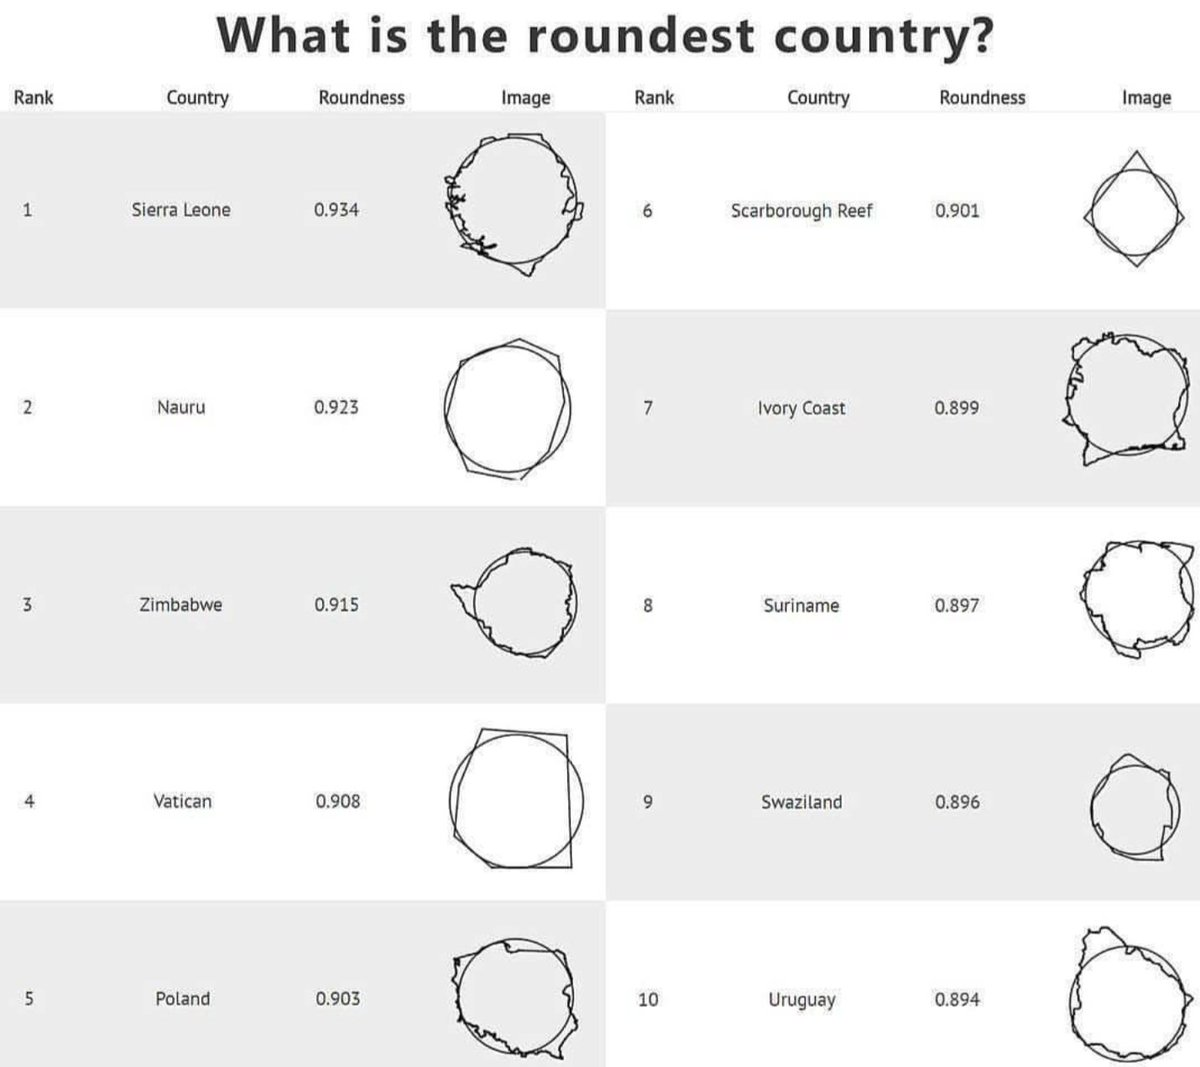 What is the roundest country?